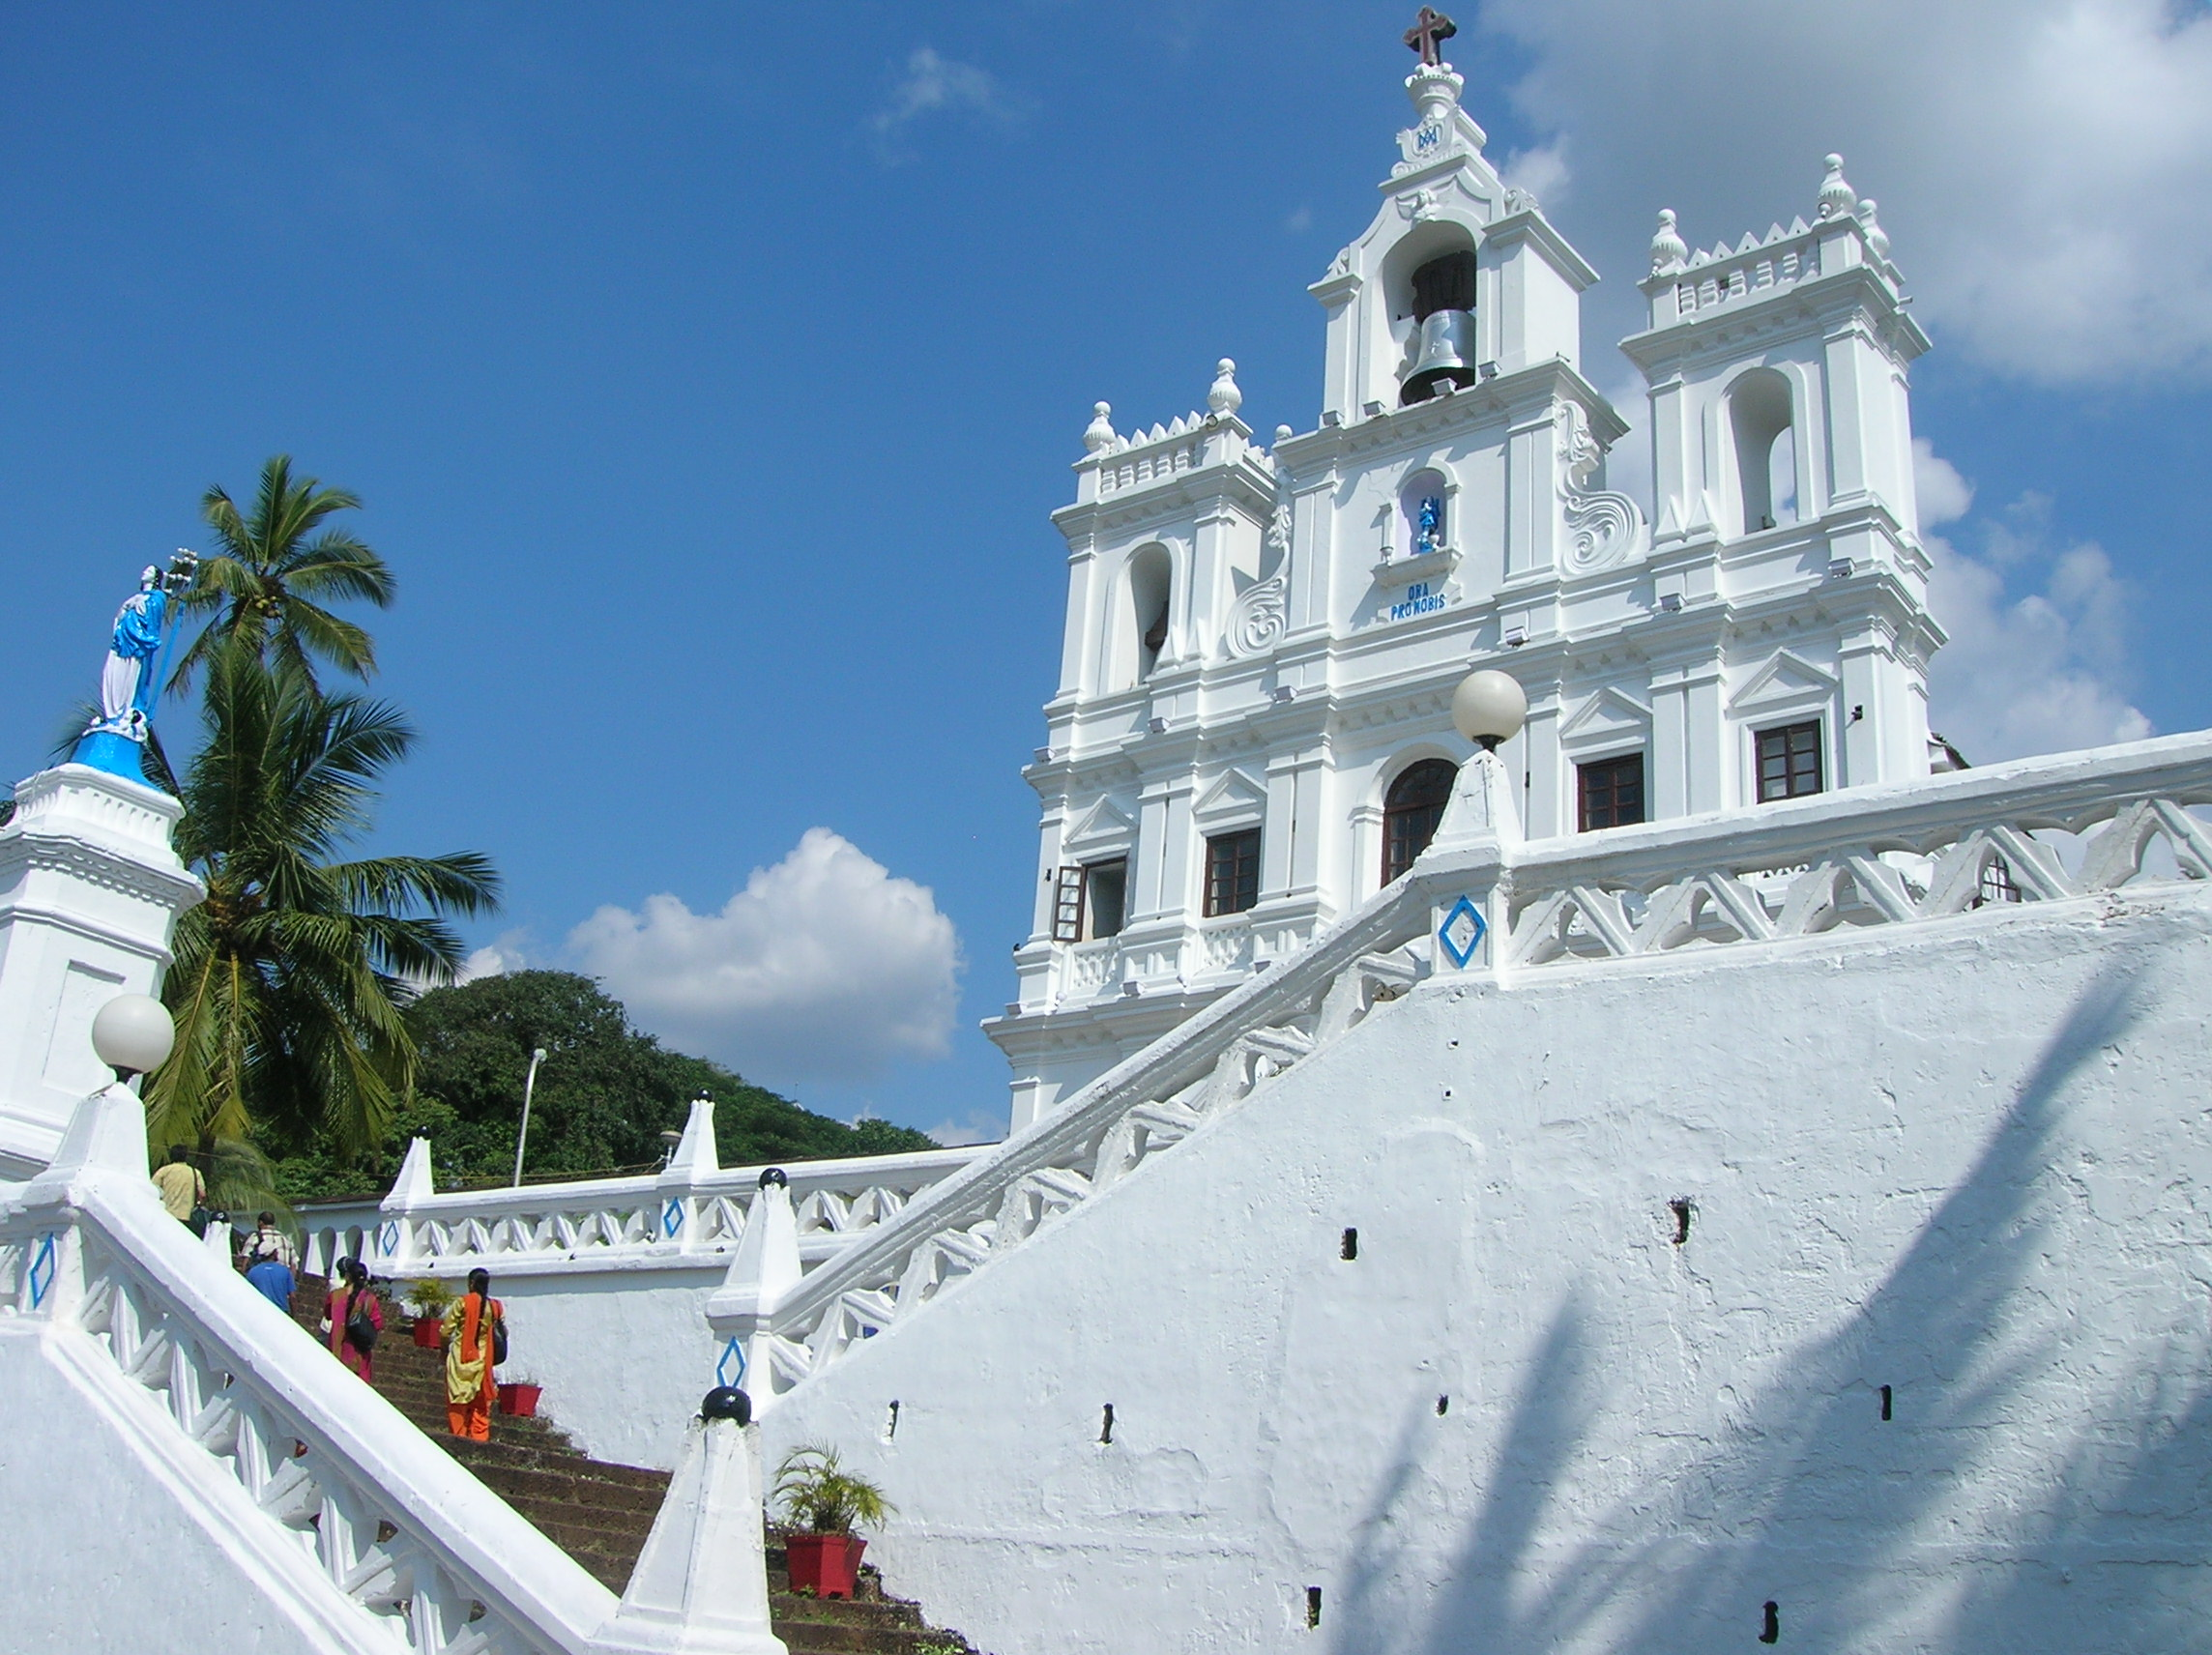 Panjim church, Goa, India (Ulrike Rodrigues)